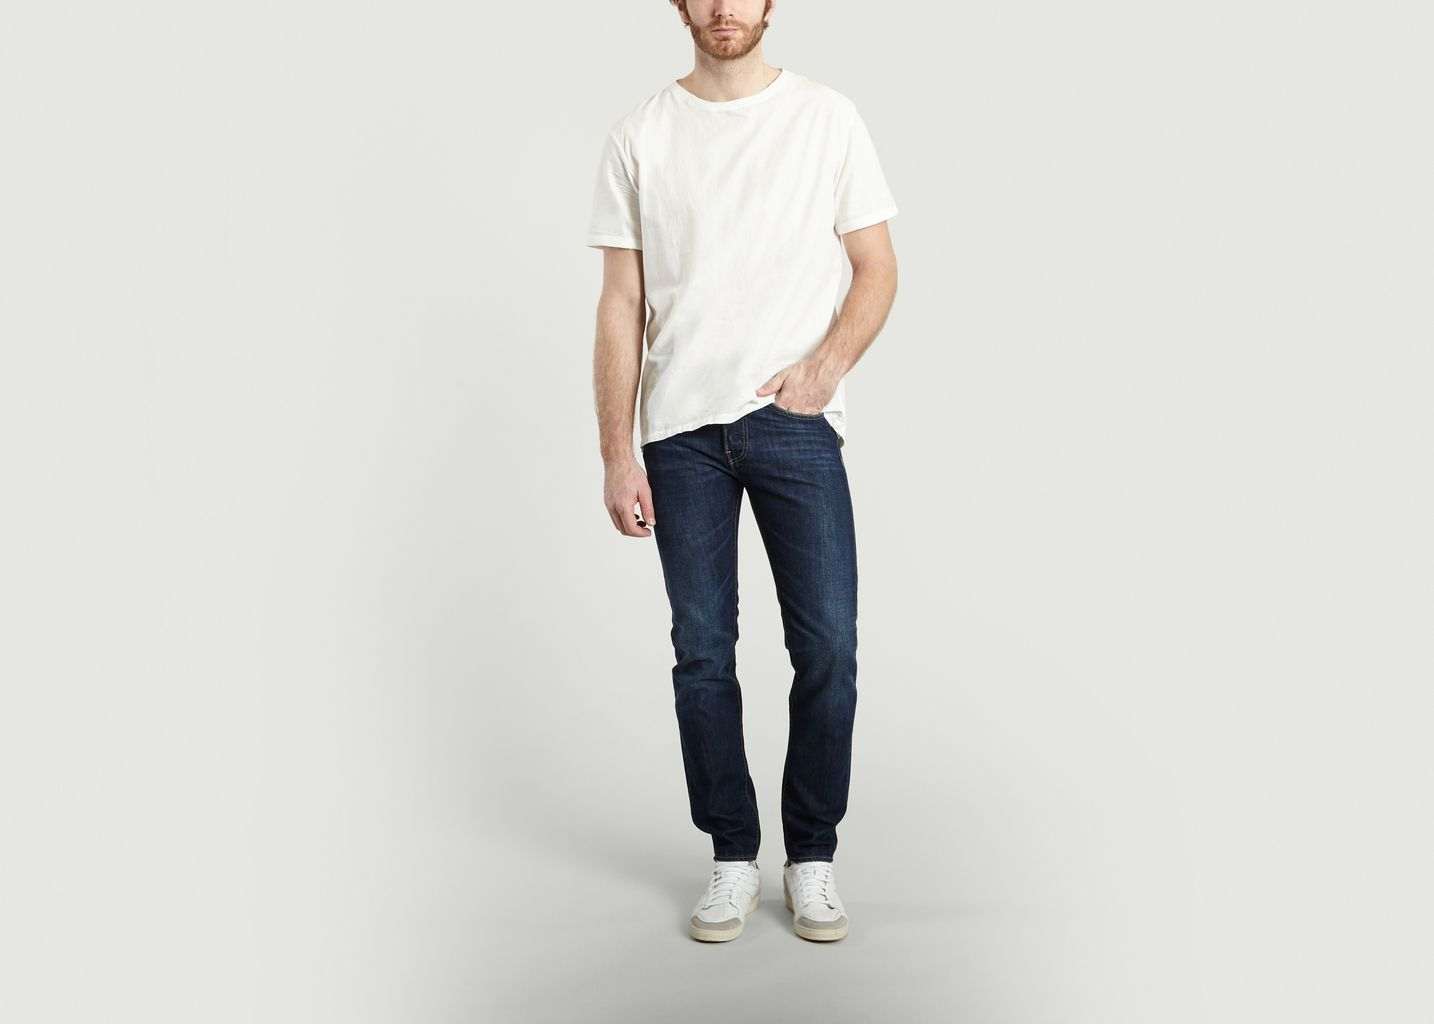 95e303034750 Peskowitz Woven T-shirt White Levi s Made and Crafted